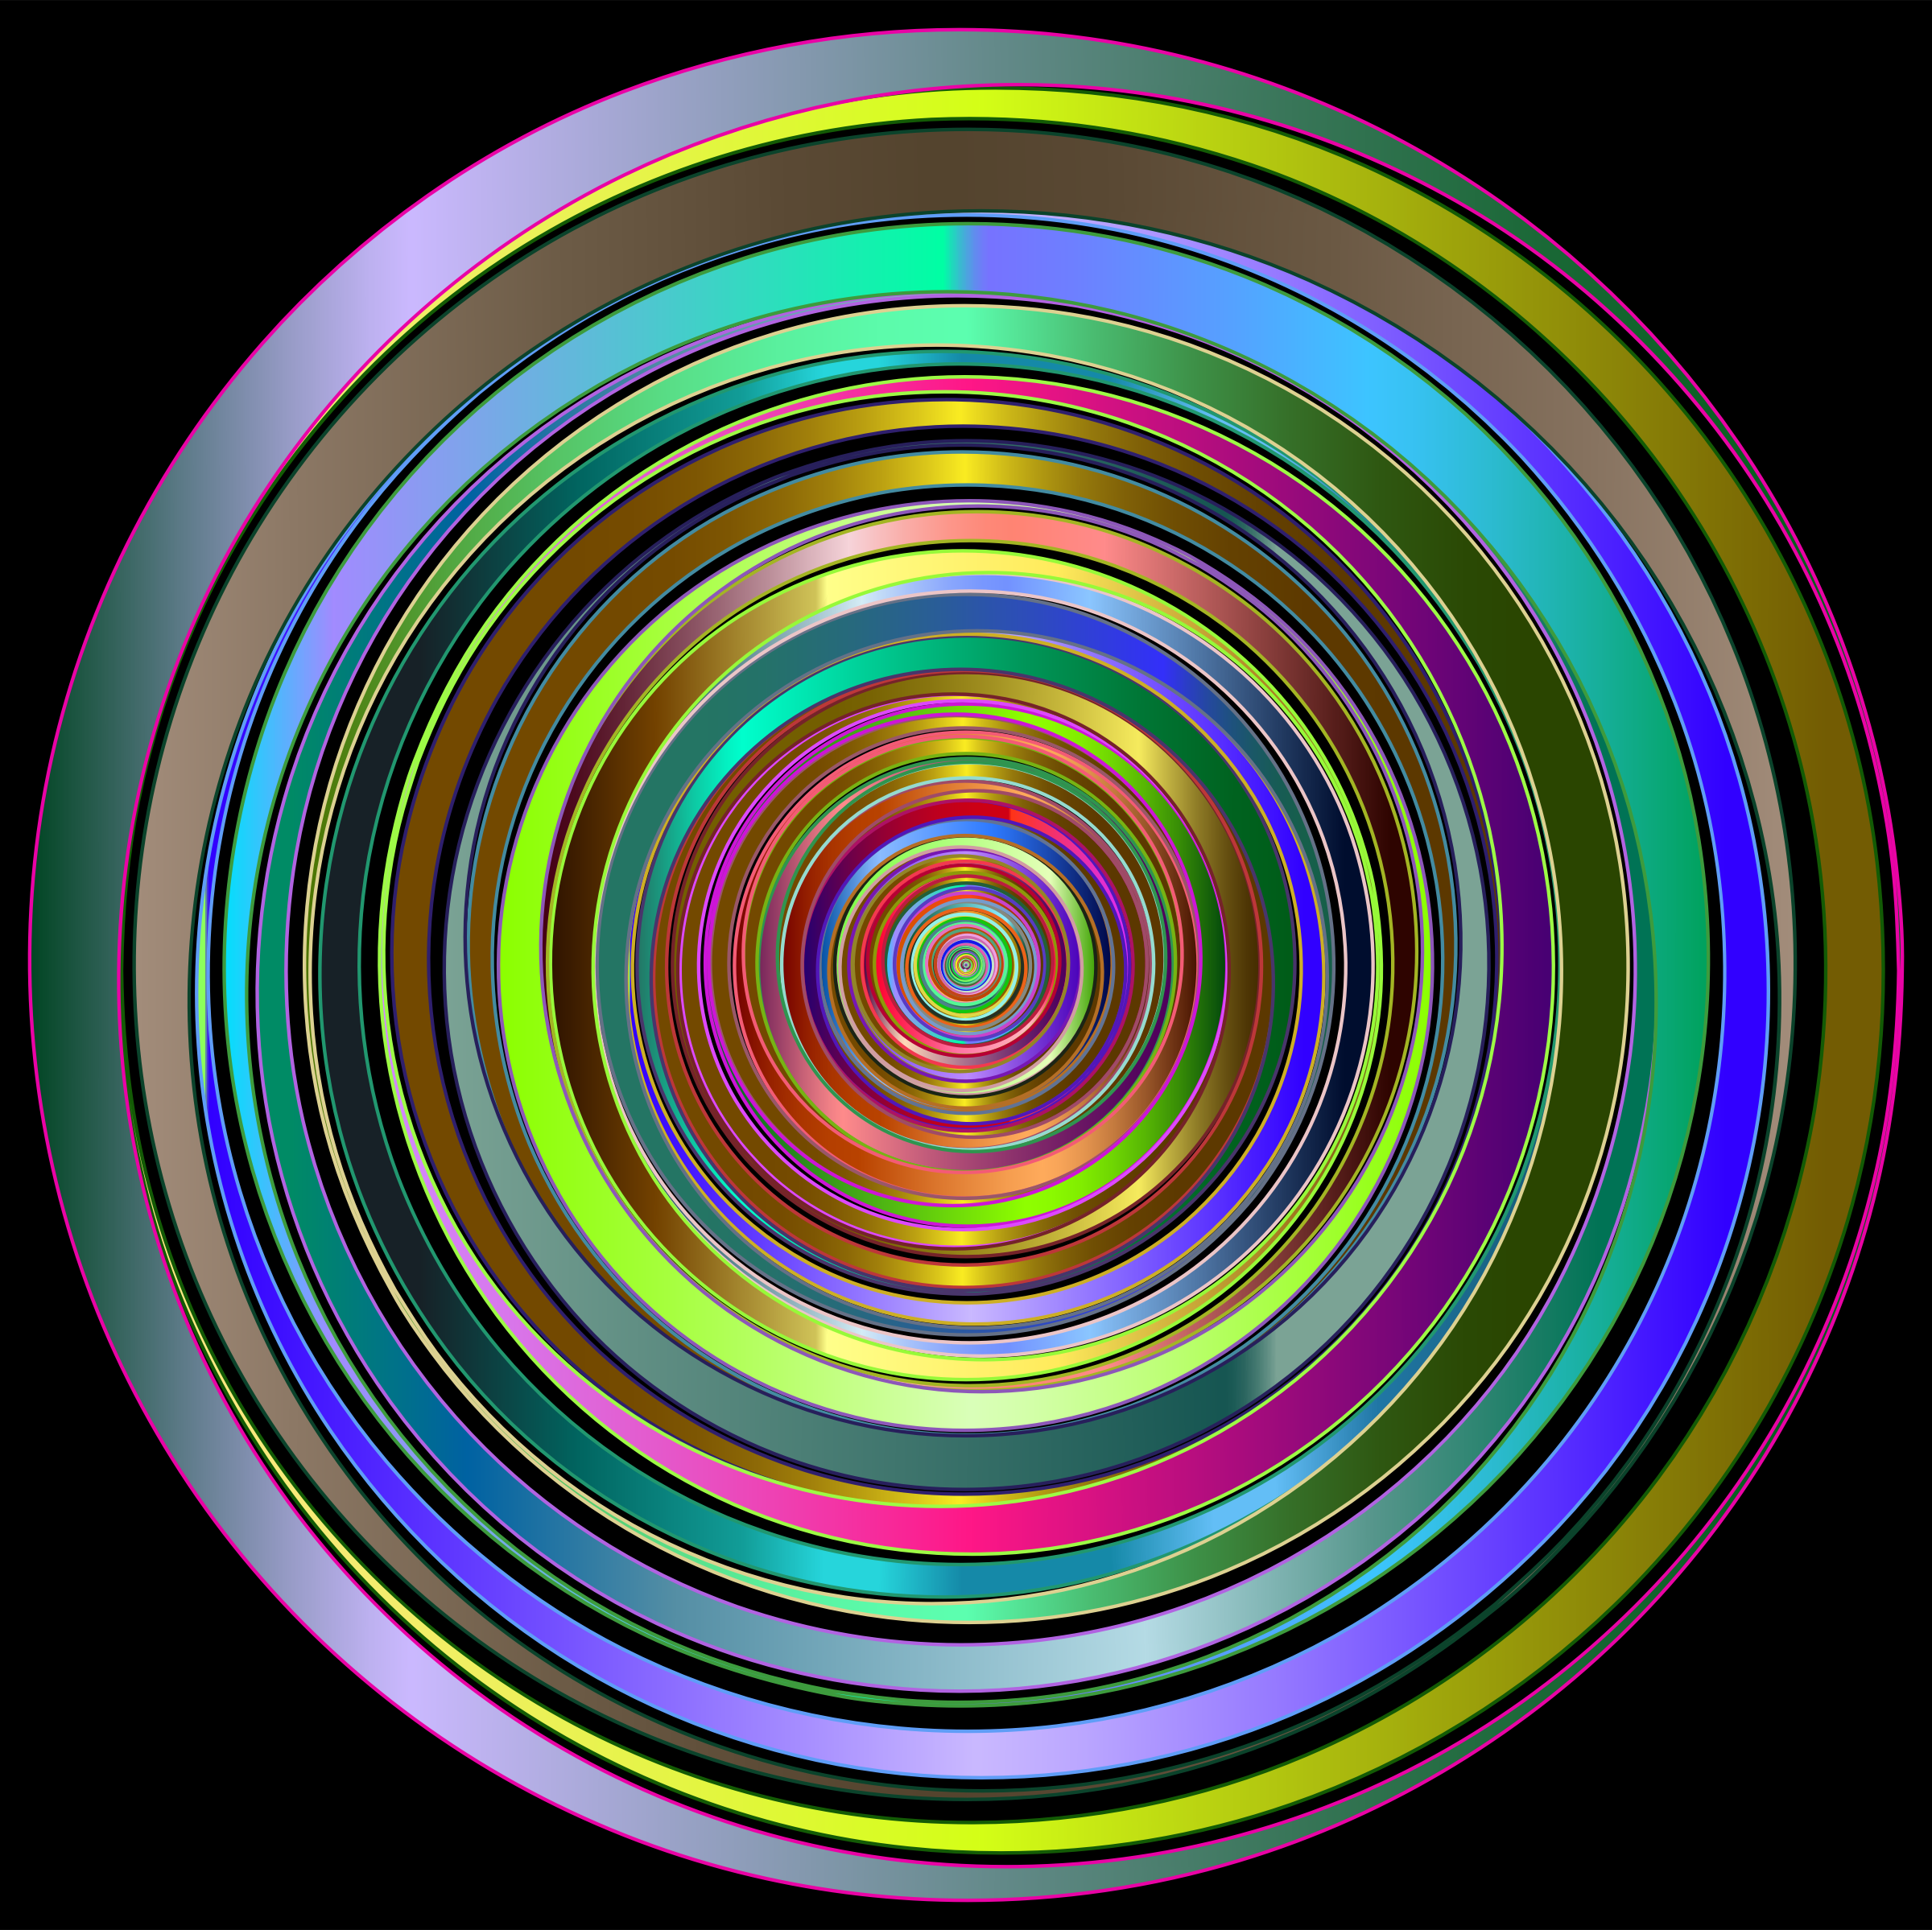 Prismatic Abstract Vortex 18 2 Variation 2 by GDJ